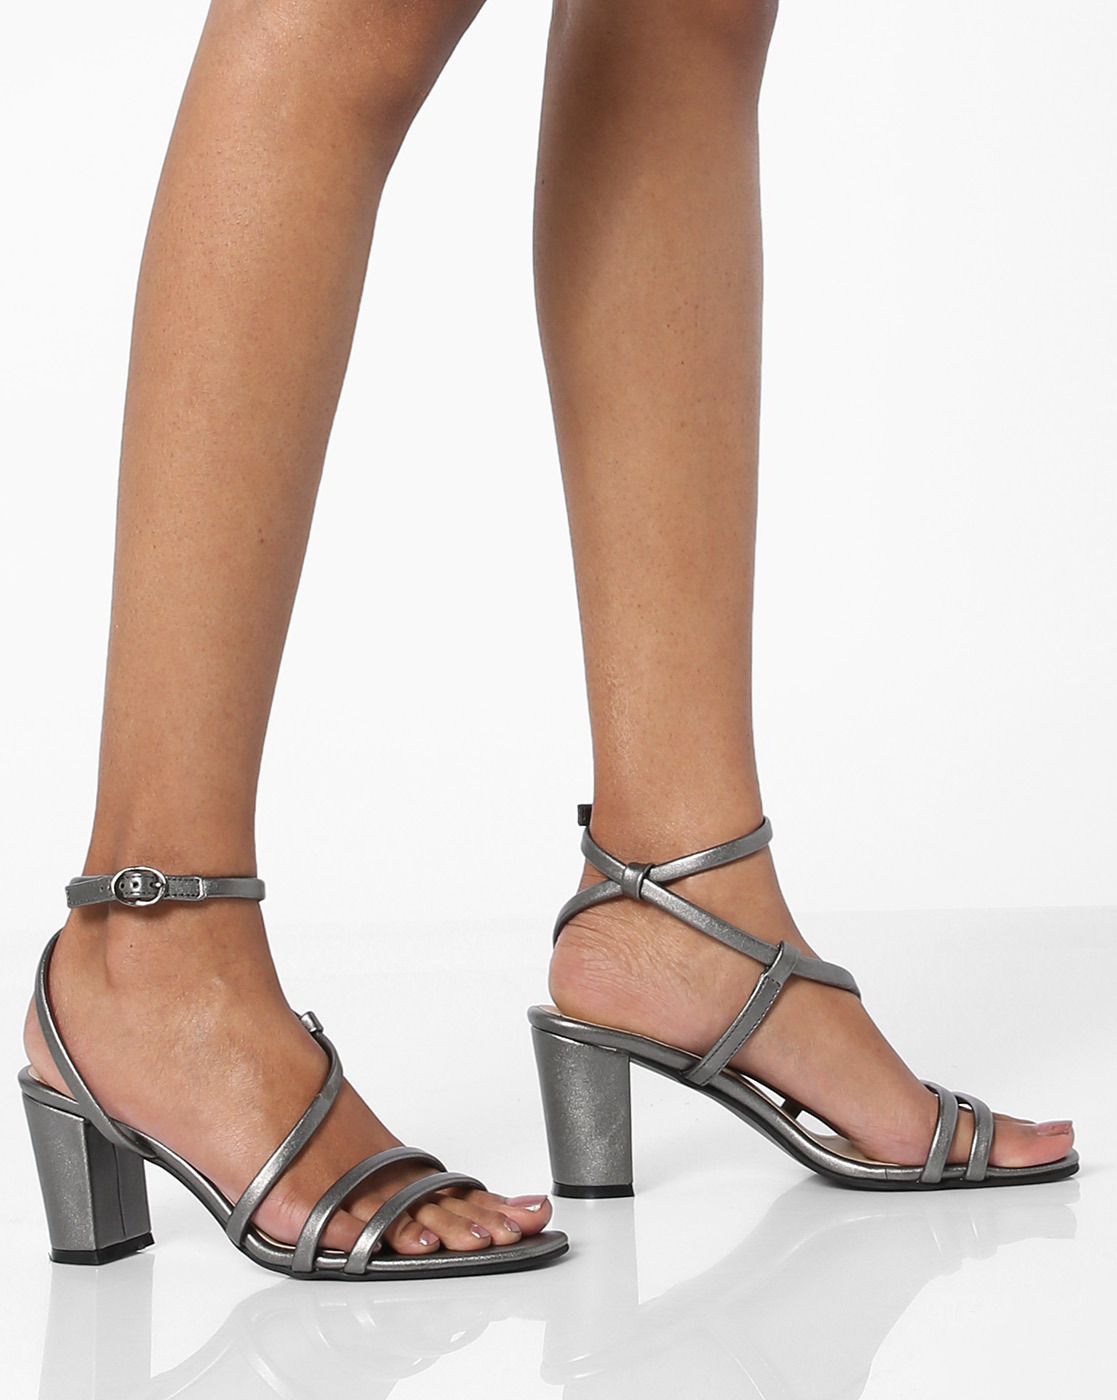 3 party - Multi-Strap Chunky Heels